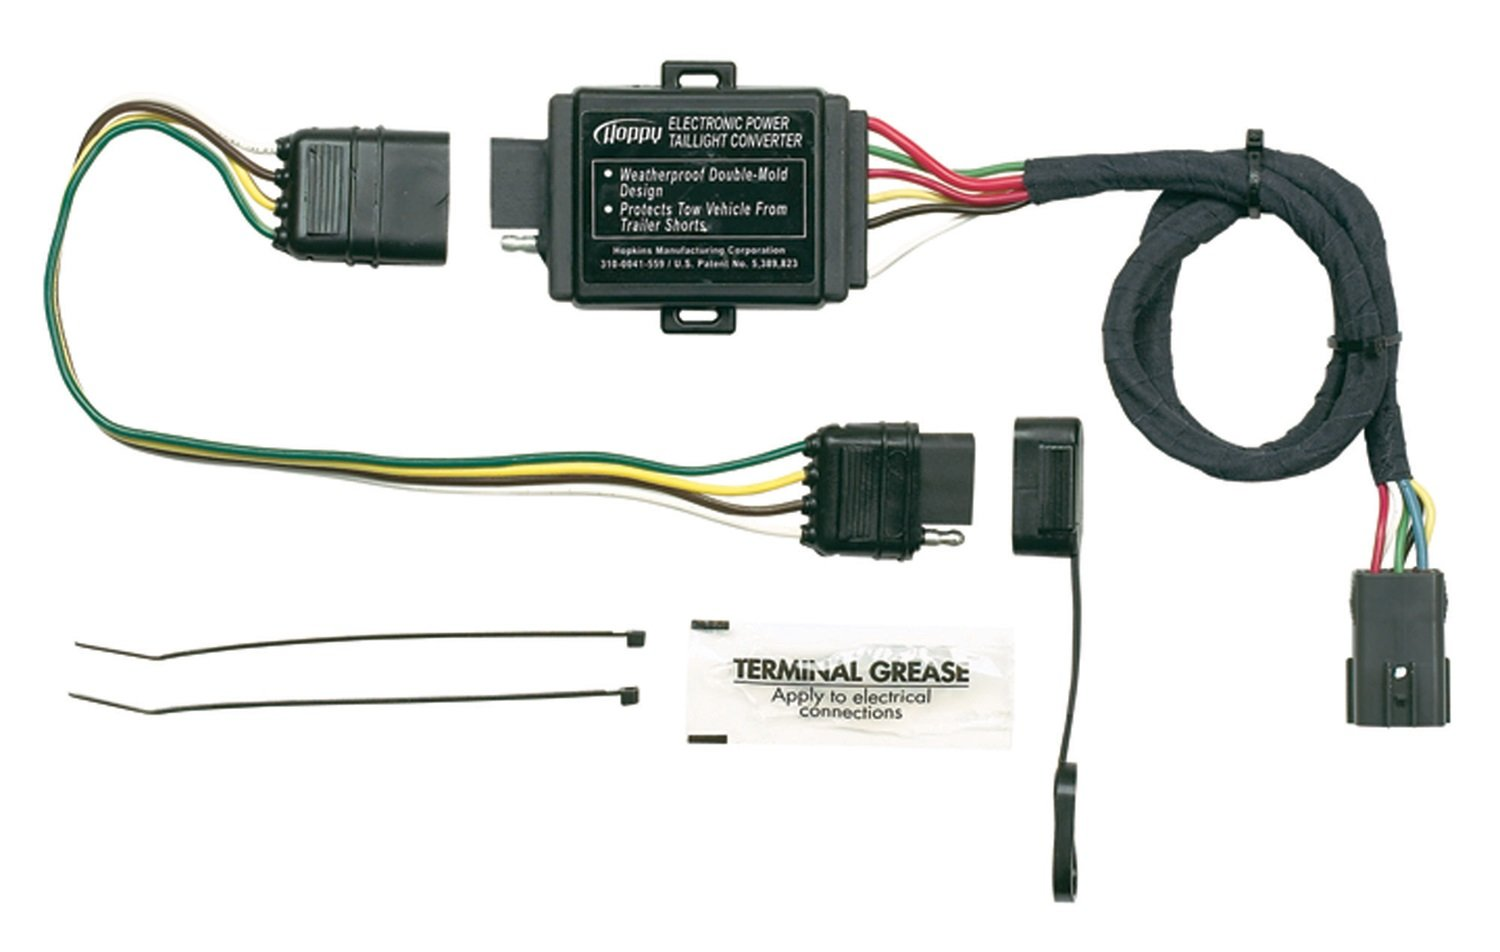 61dKvjPegbL._SL1500_ amazon com hopkins 11143875 plug in simple vehicle to trailer universal trailer wiring harness at reclaimingppi.co